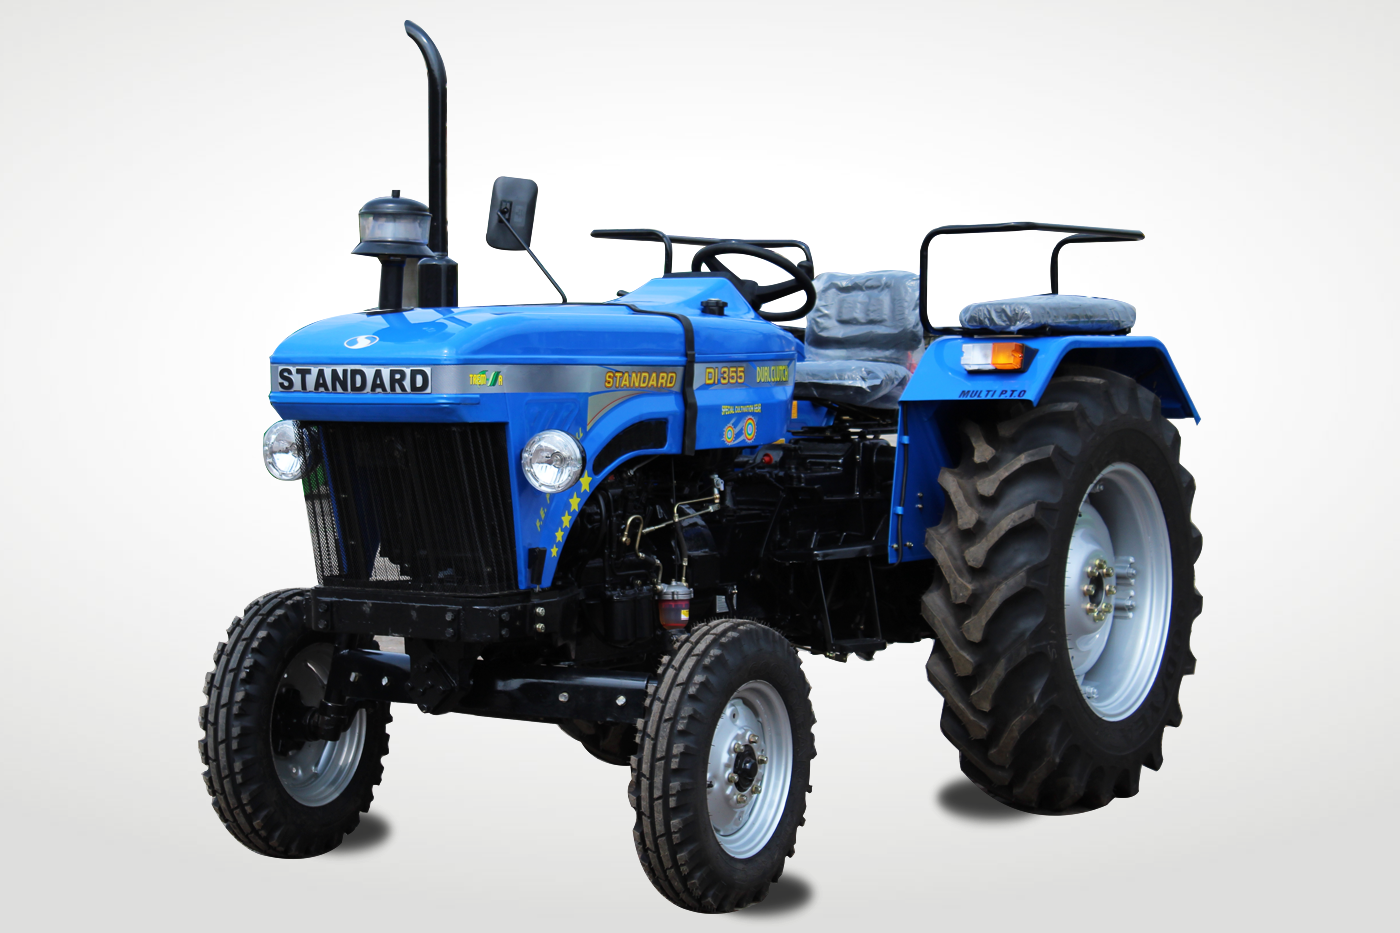 https://images.tractorgyan.com/uploads/539/Standard-DI-355-1-tractorgyan.png